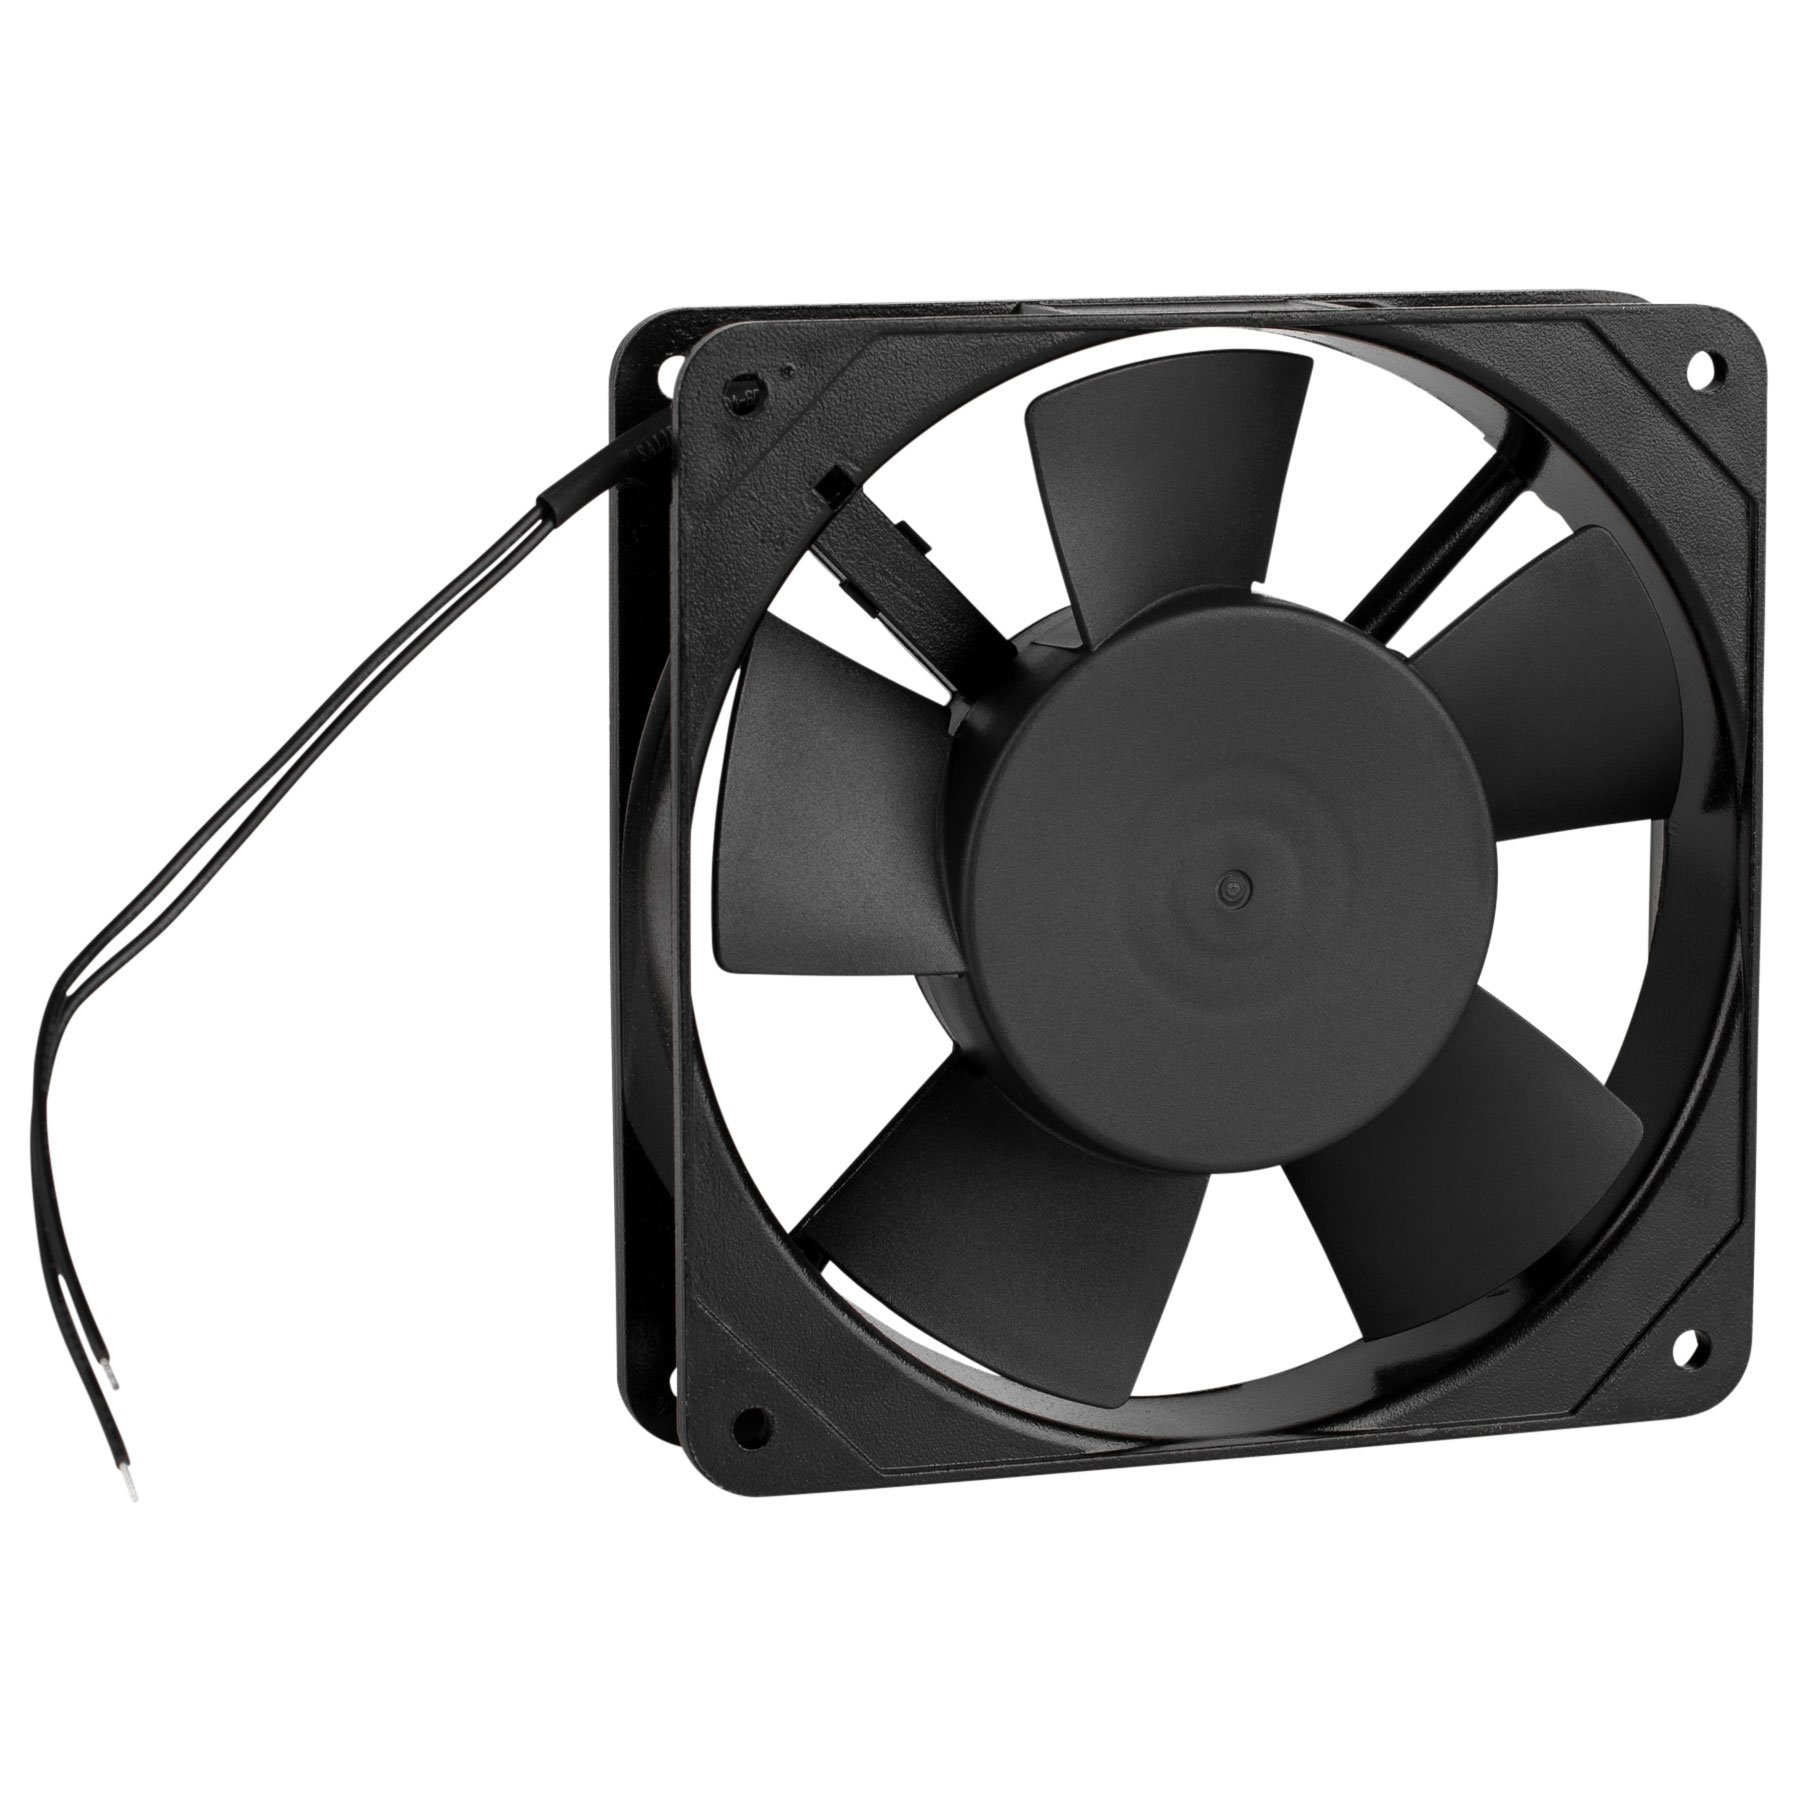 Parts Express Muffin Style Axial Cooling Fan 120 VAC 120 x 120 x 25mm 45 CFM